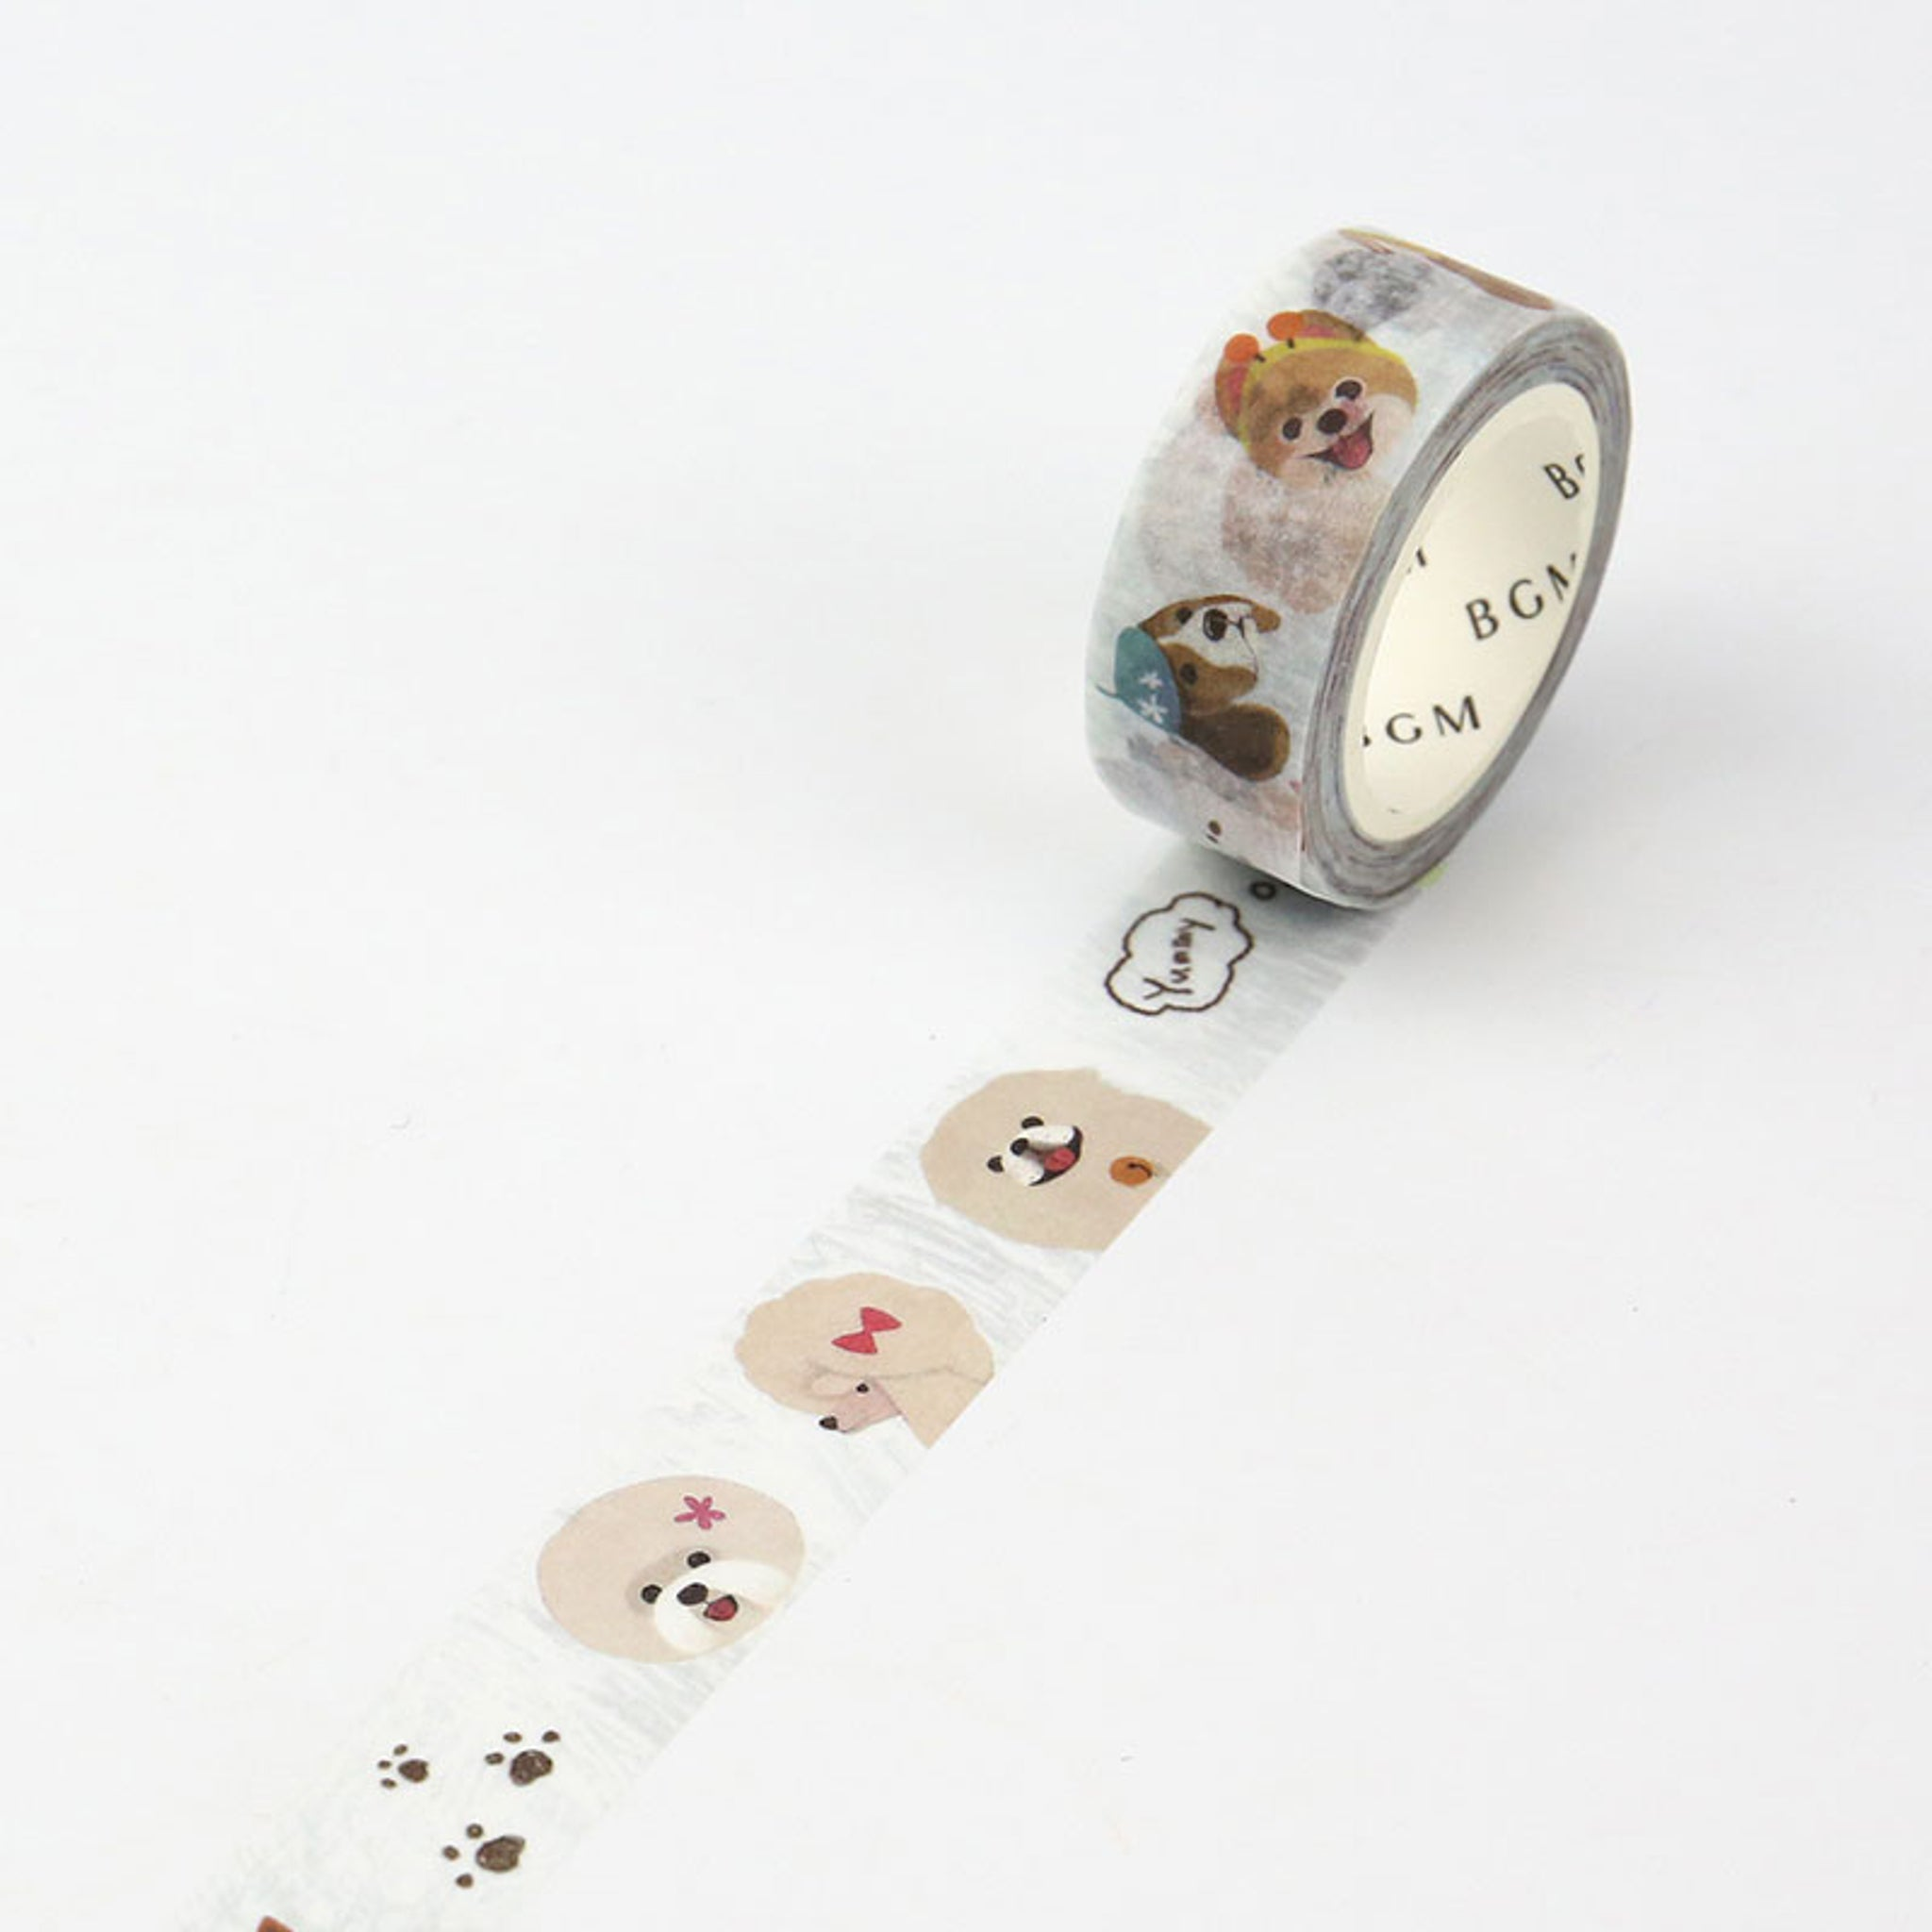 BGM Puppy Washi Tape